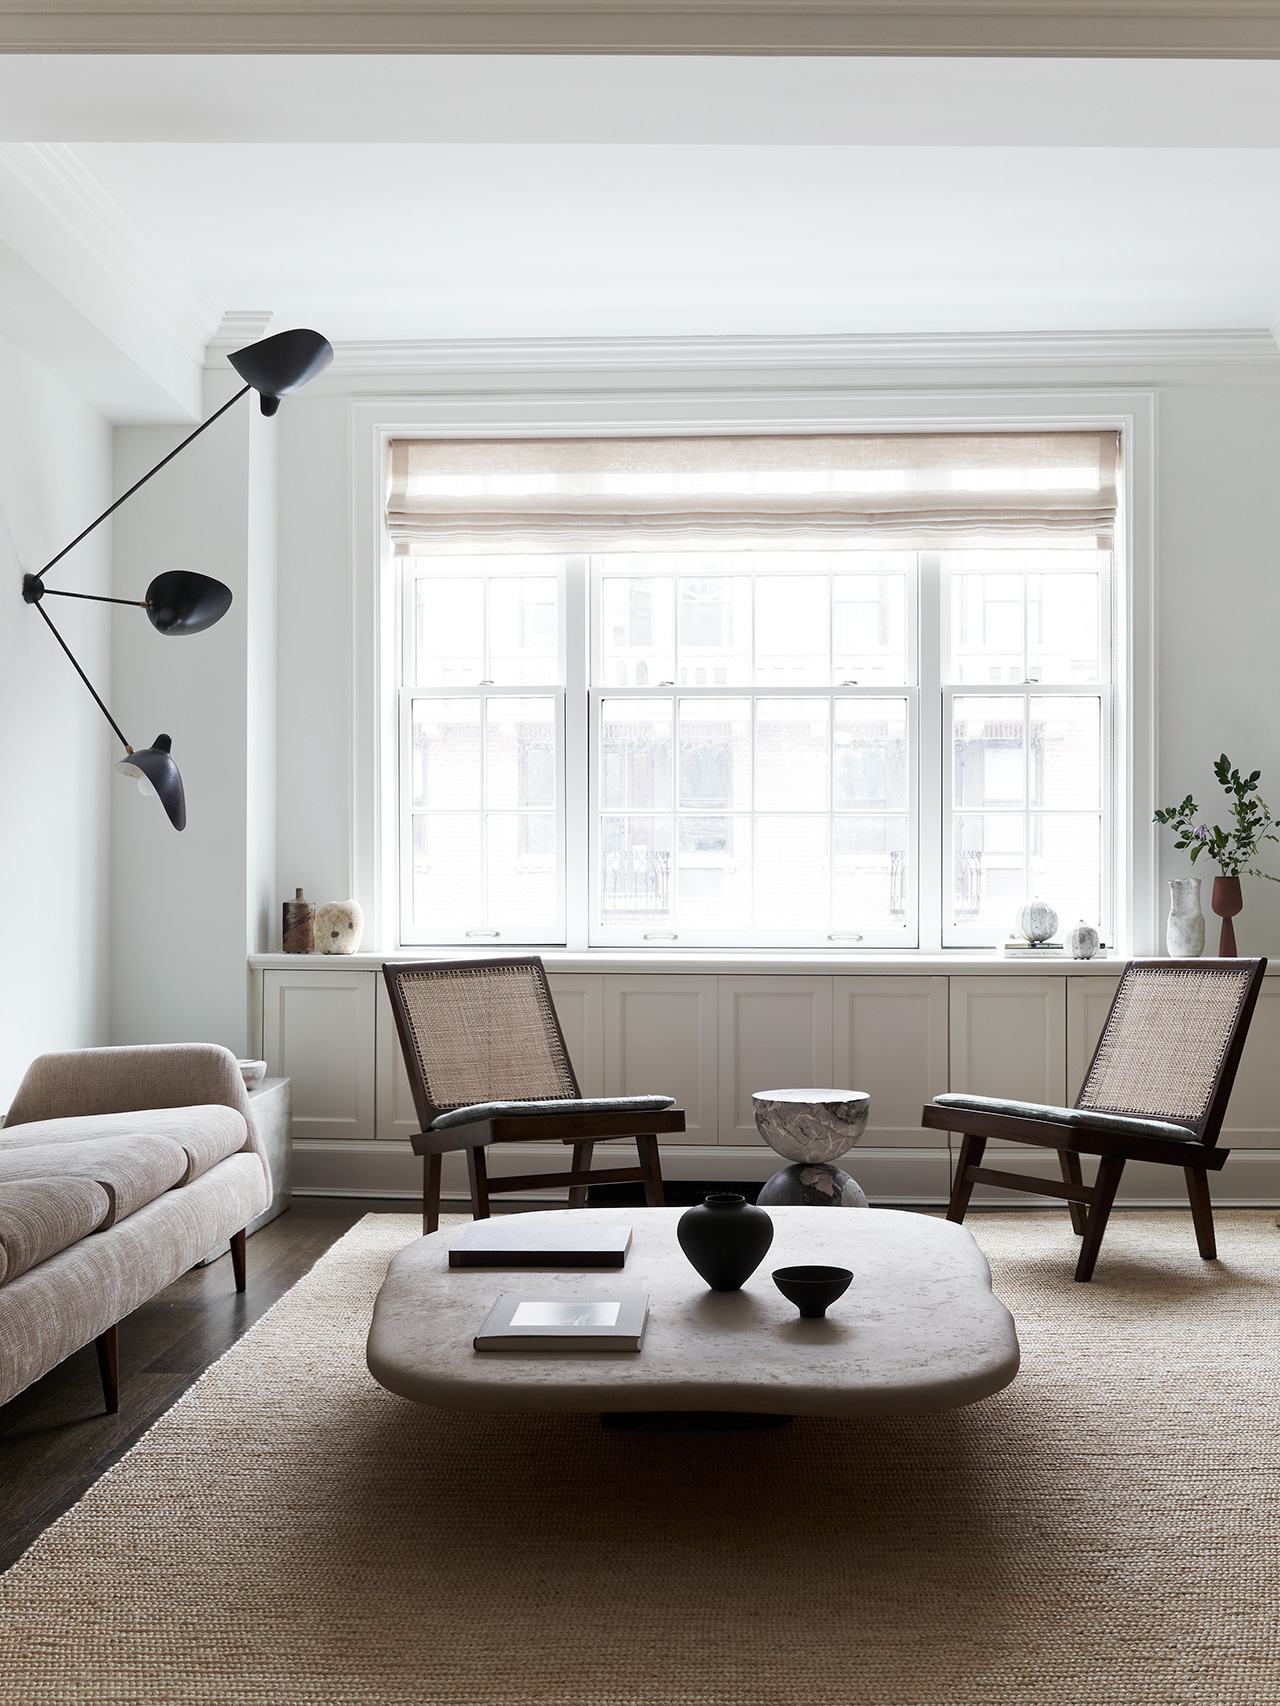 Photography by Adrian Gaut. Styling by Colin King. Featured: Coffee table by Axel Vervoordt; Pair of chairs by Pierre Jeanneret circa 1958 from Dobrinka Salzman; Wall sconce by Serge Mouille circa 1955 from MDFG; Bespoke side table by Sandra Weingort for Light on White.